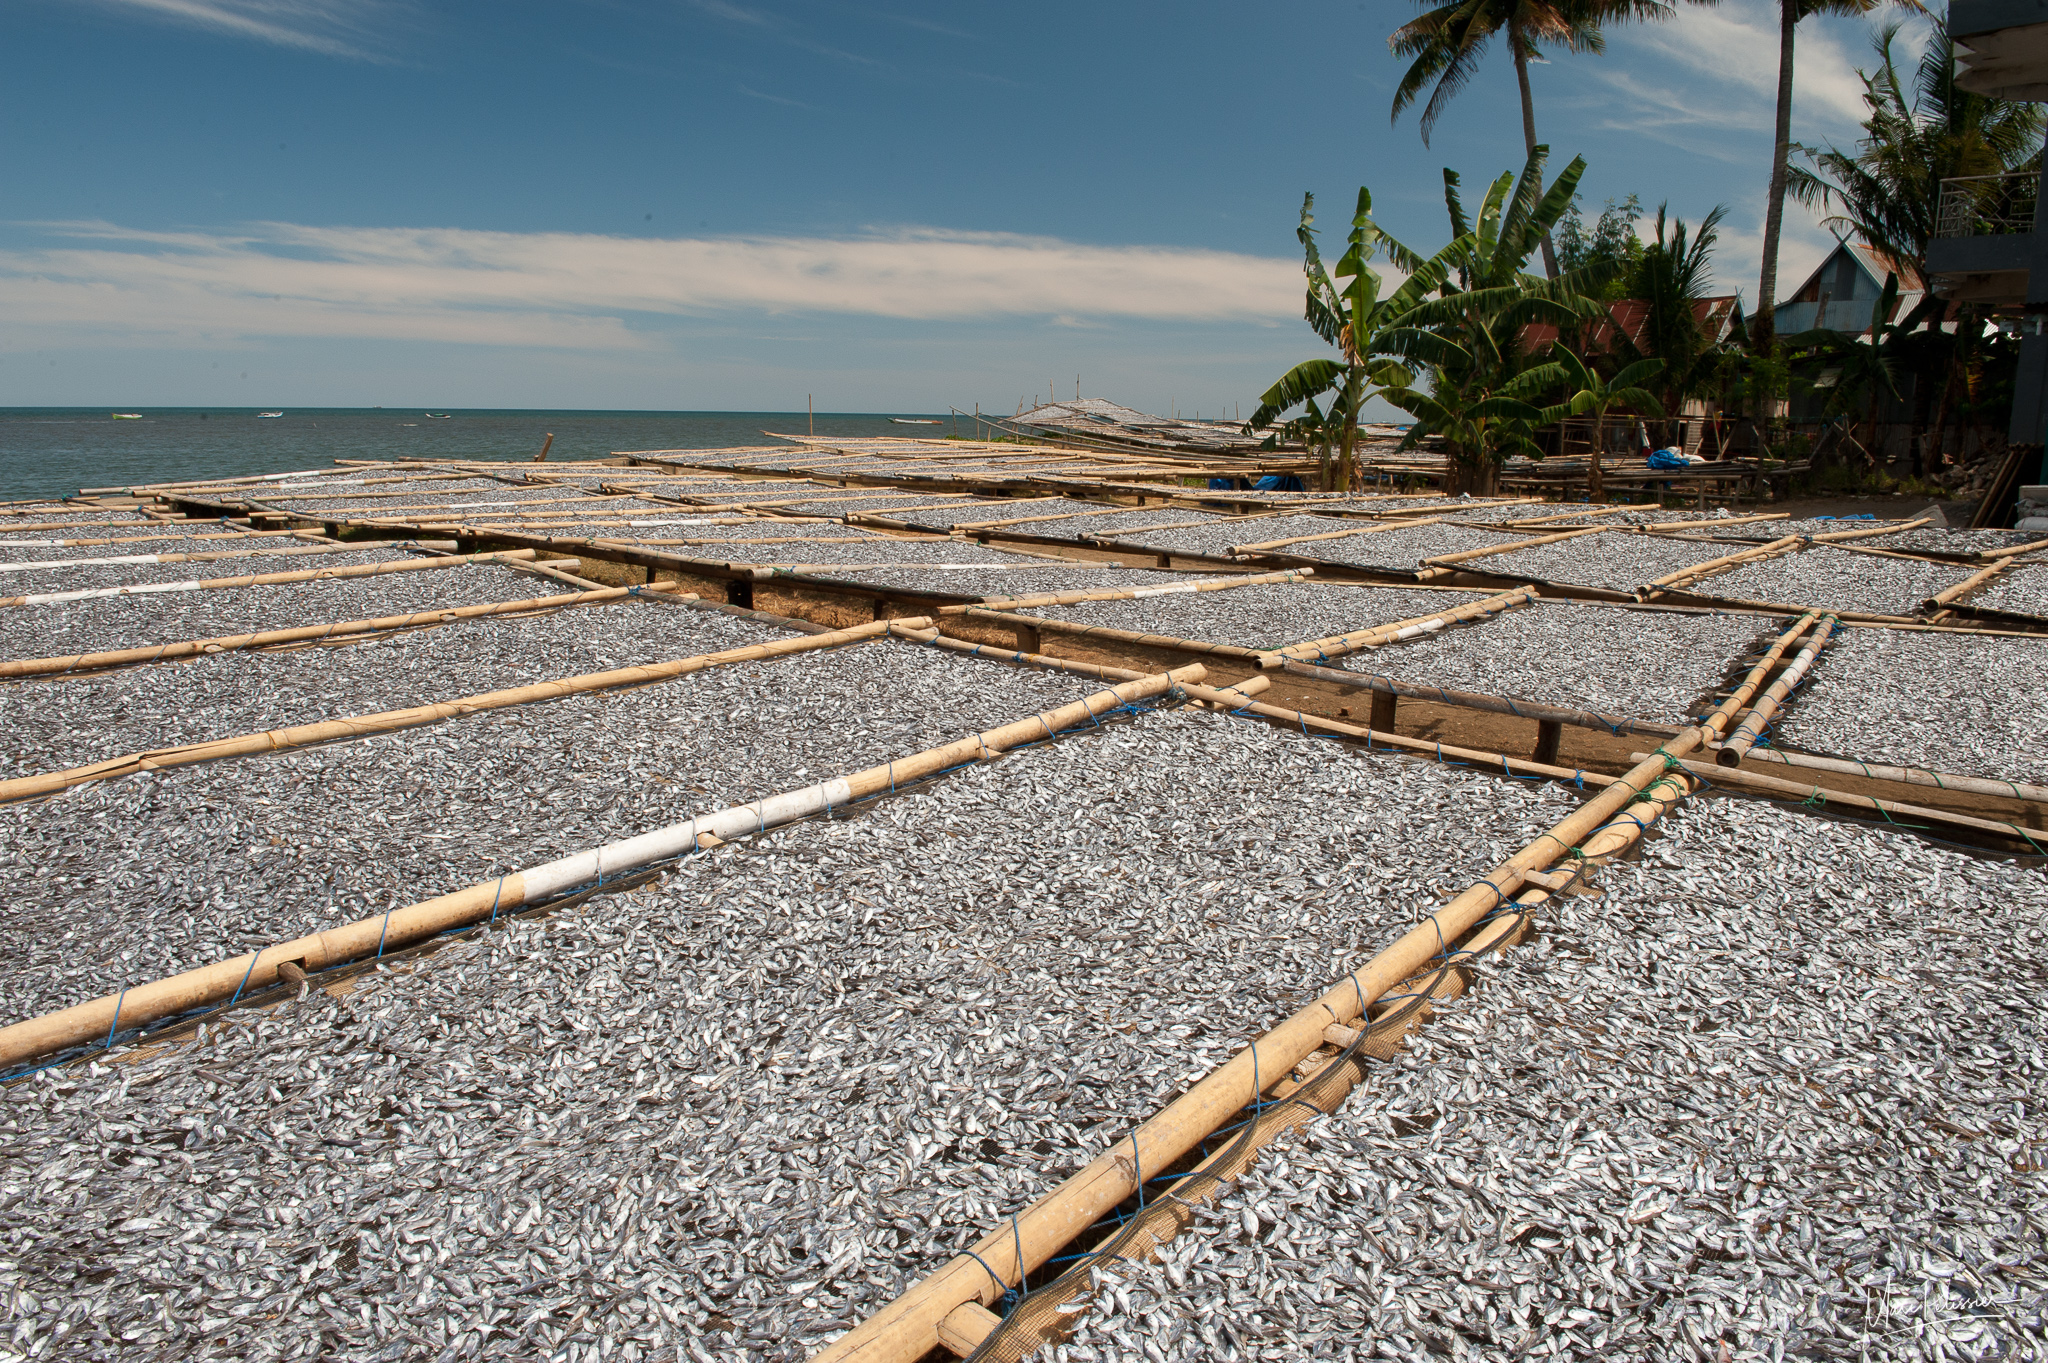 Drying fish area, Indonesia